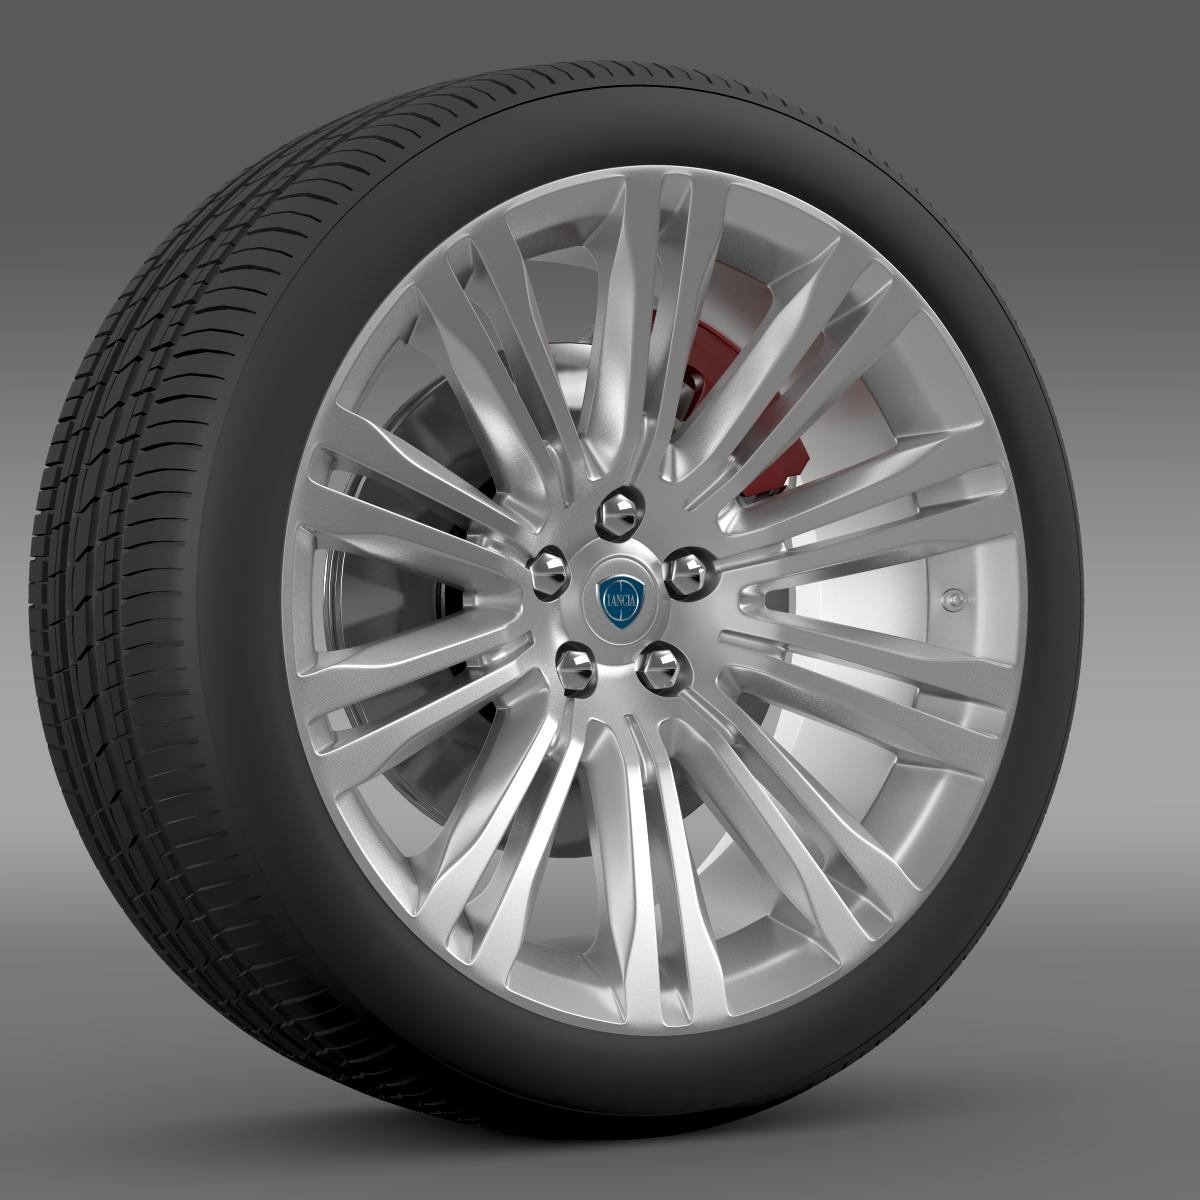 lancia thema 2014 wheel 3d model 3ds max fbx c4d lwo ma mb hrc xsi obj 210730